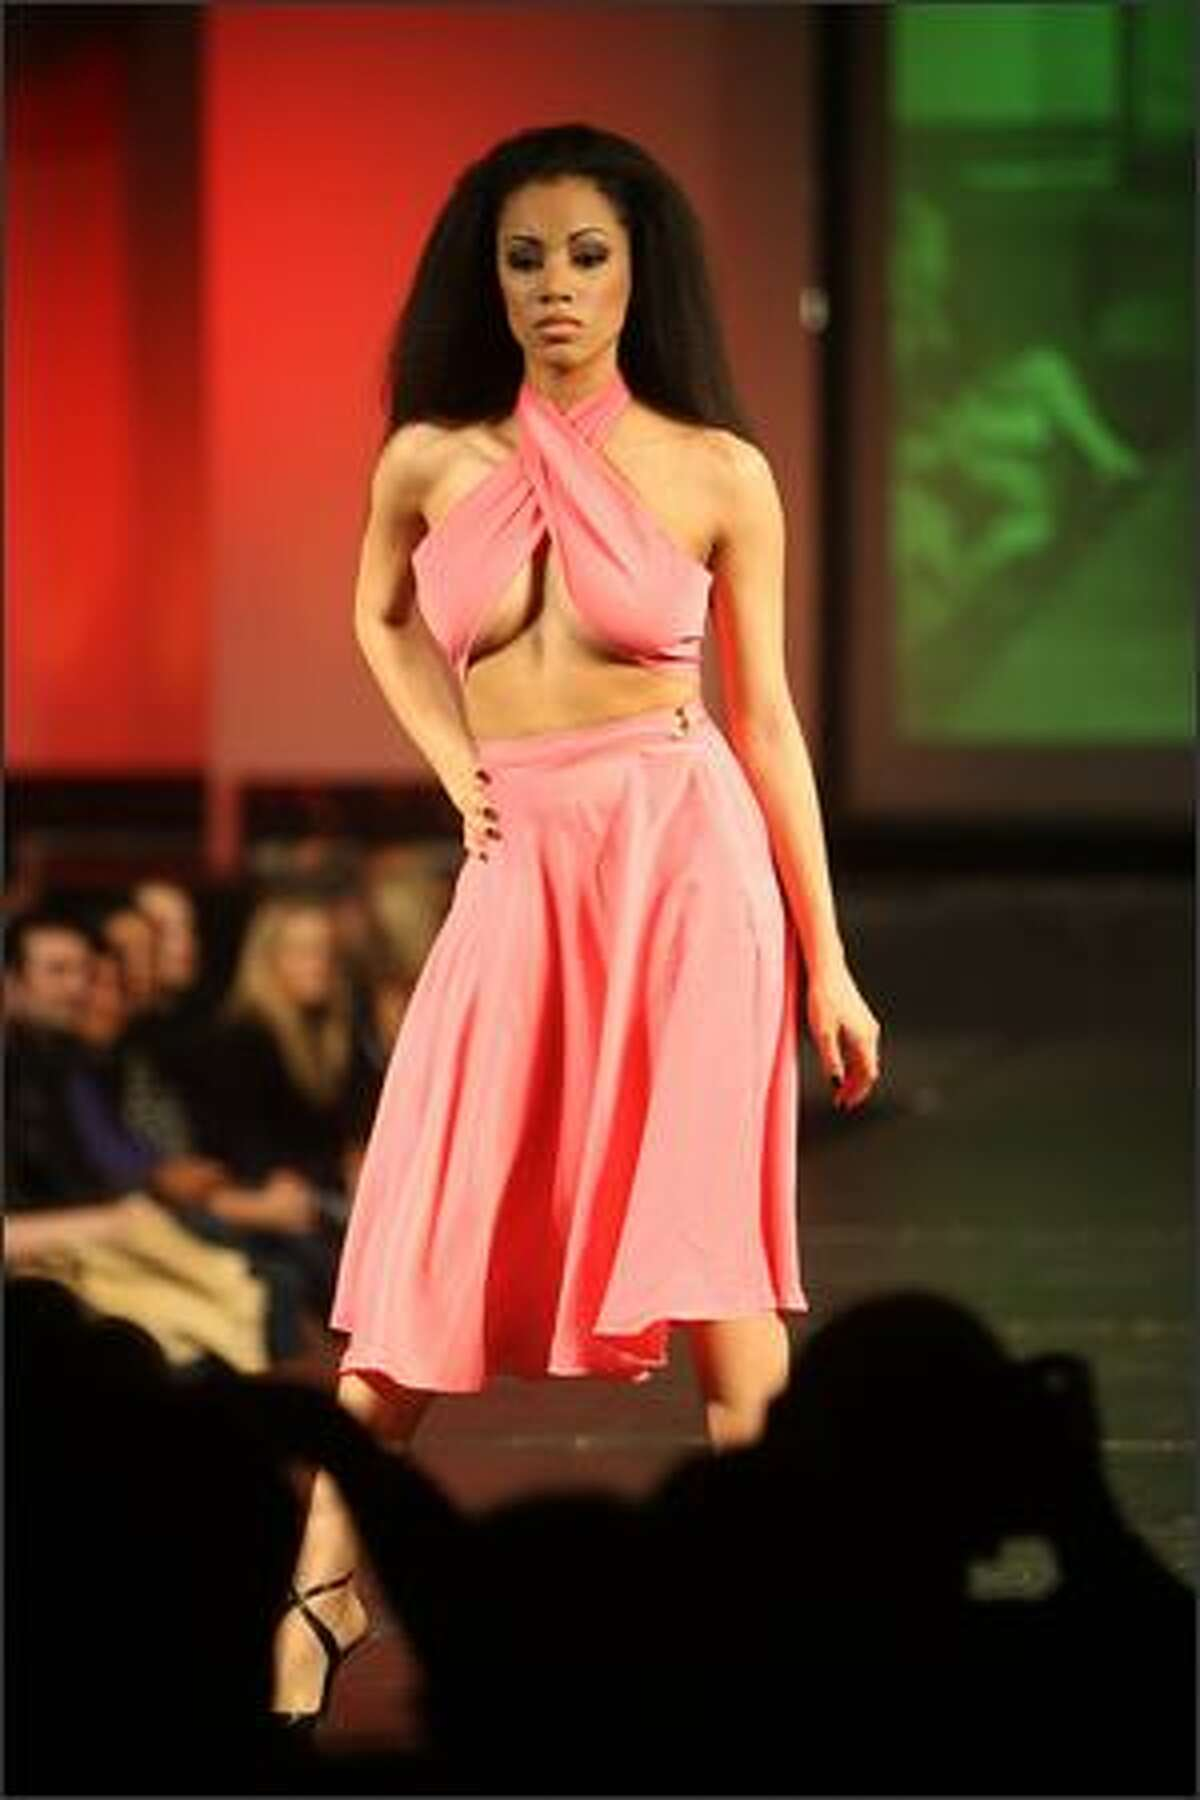 Model and audio production student at Art Institute of Seattle Chanelle Ray walks the runway in a dress designed by Natalia Markova during the Underground Couture Fashion Show.